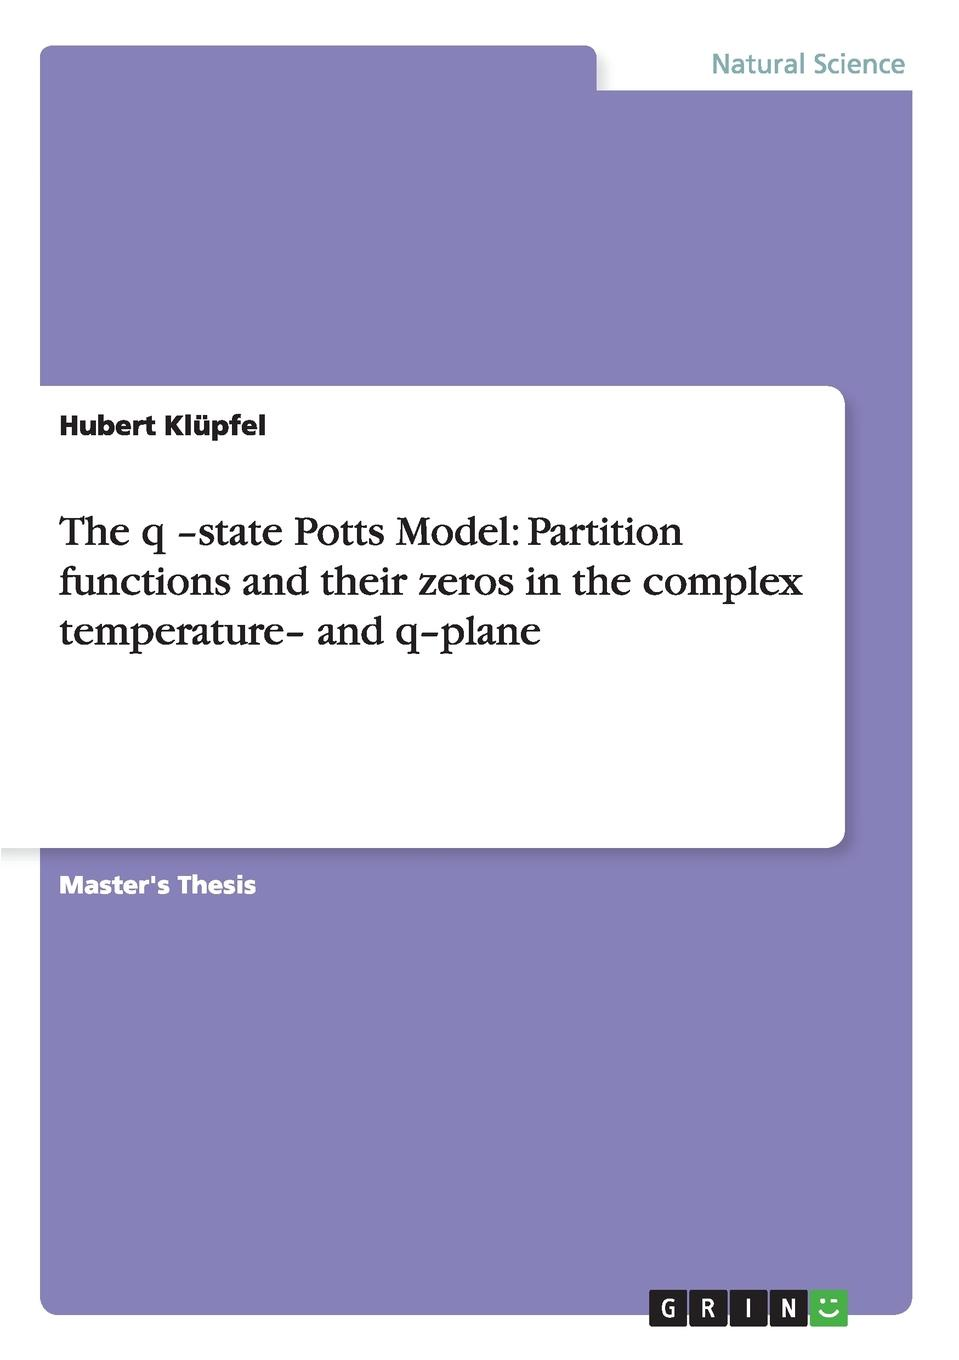 Hubert Klüpfel The q -state Potts Model. Partition functions and their zeros in the complex temperature- and q-plane